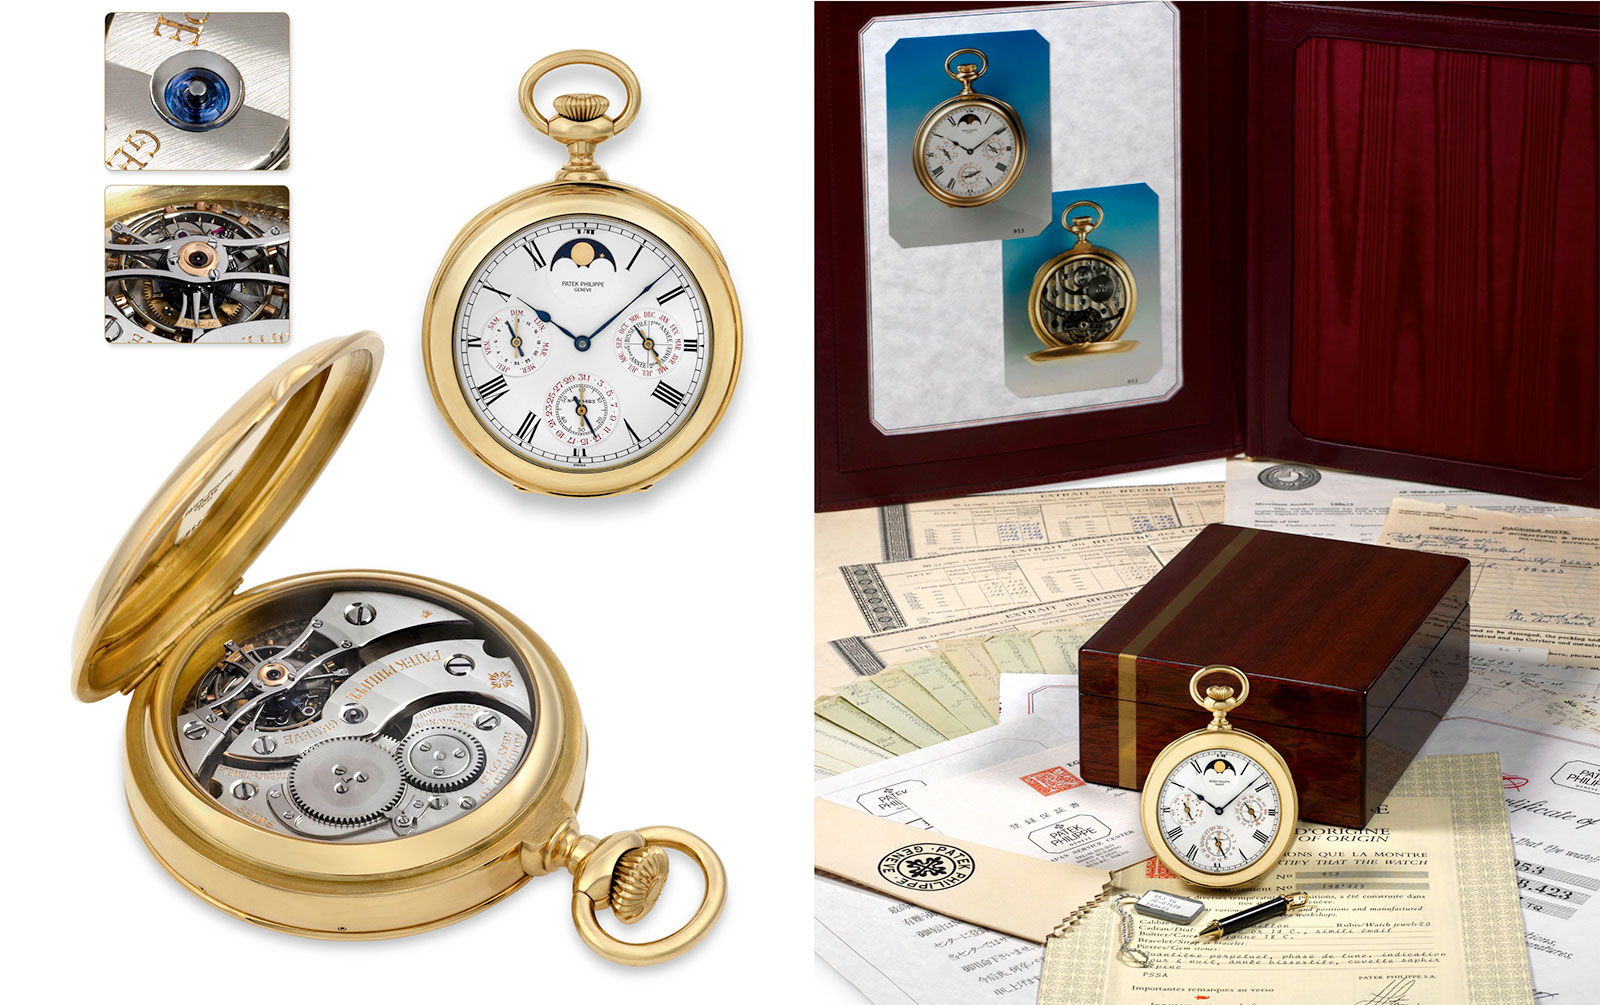 Patek-chronometer-pocket-watch-198423